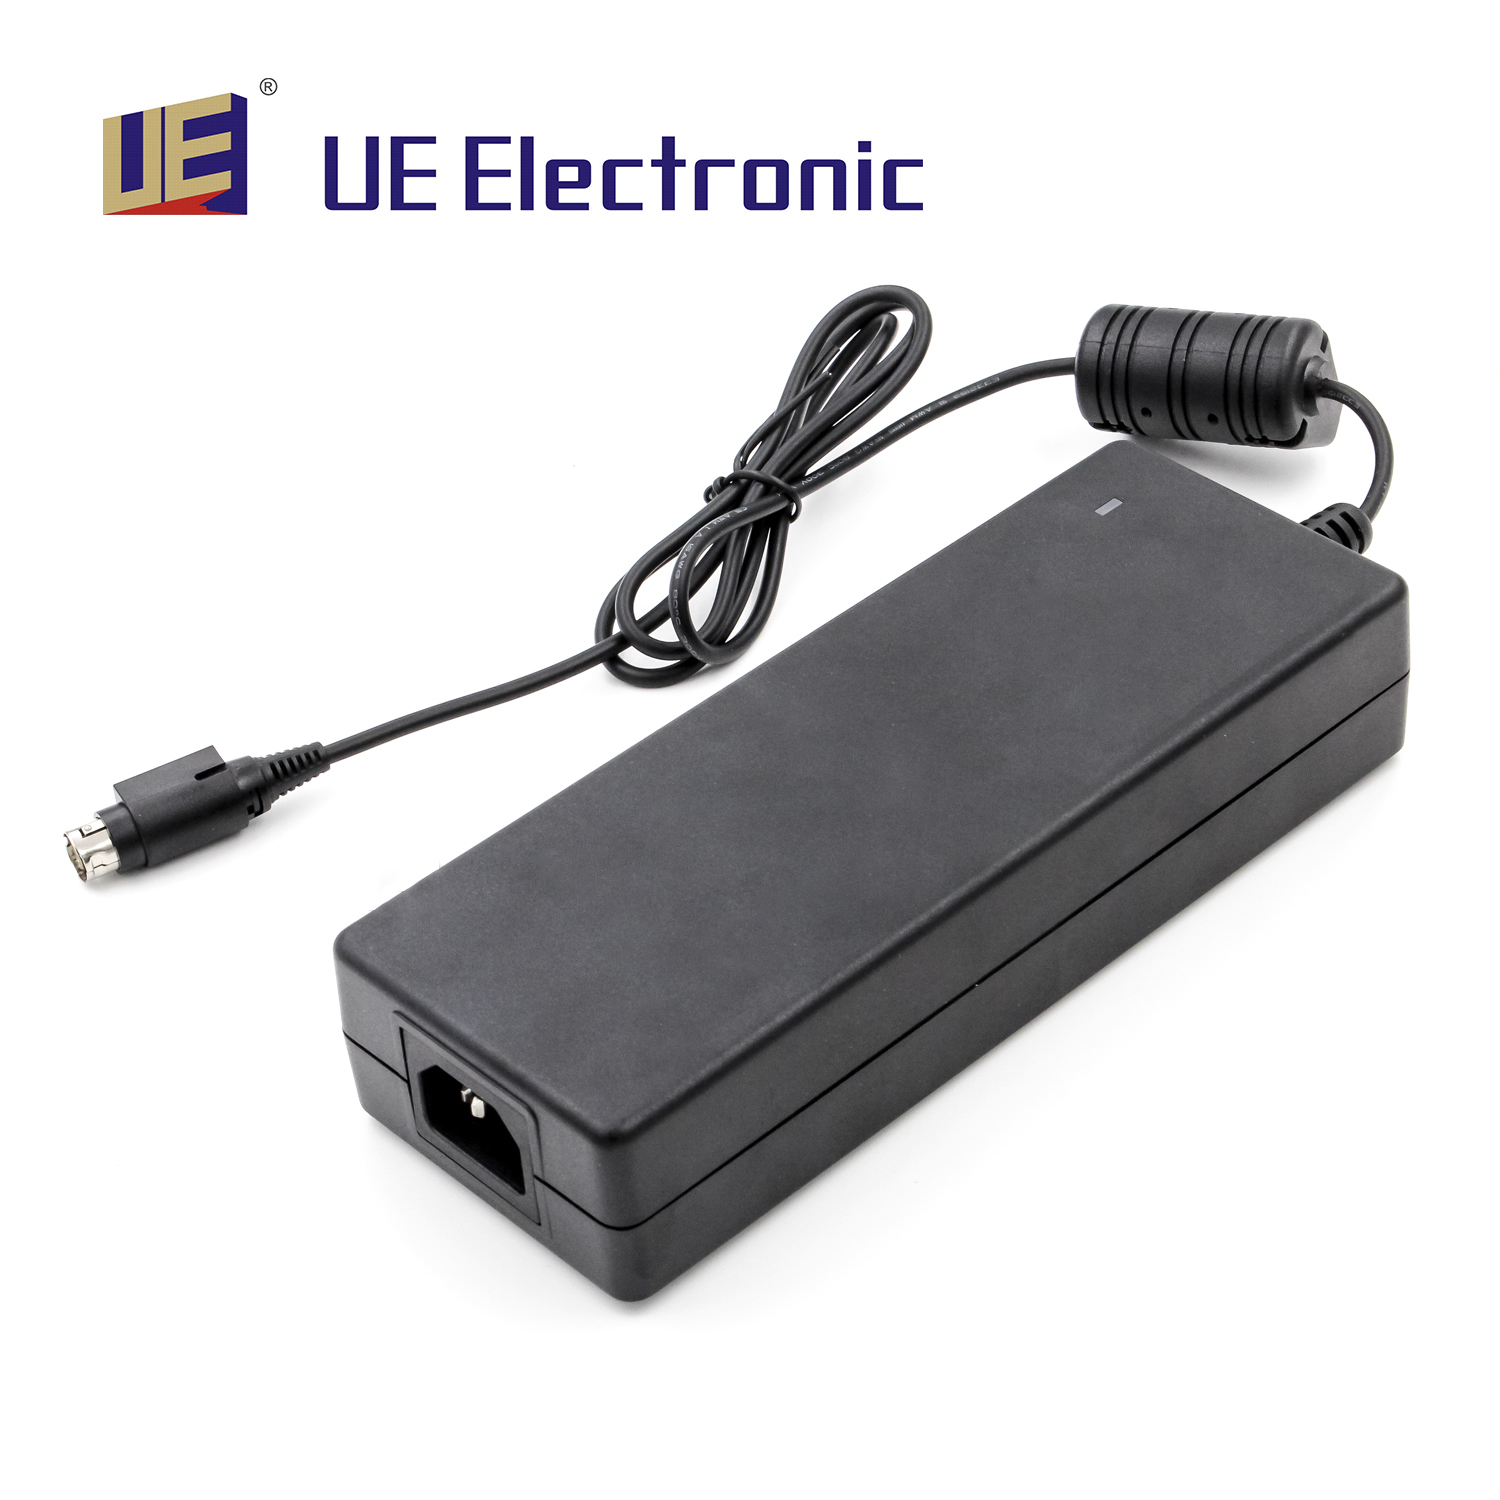 UE Electronic Super thin 150W medical adaptor for medical equipment